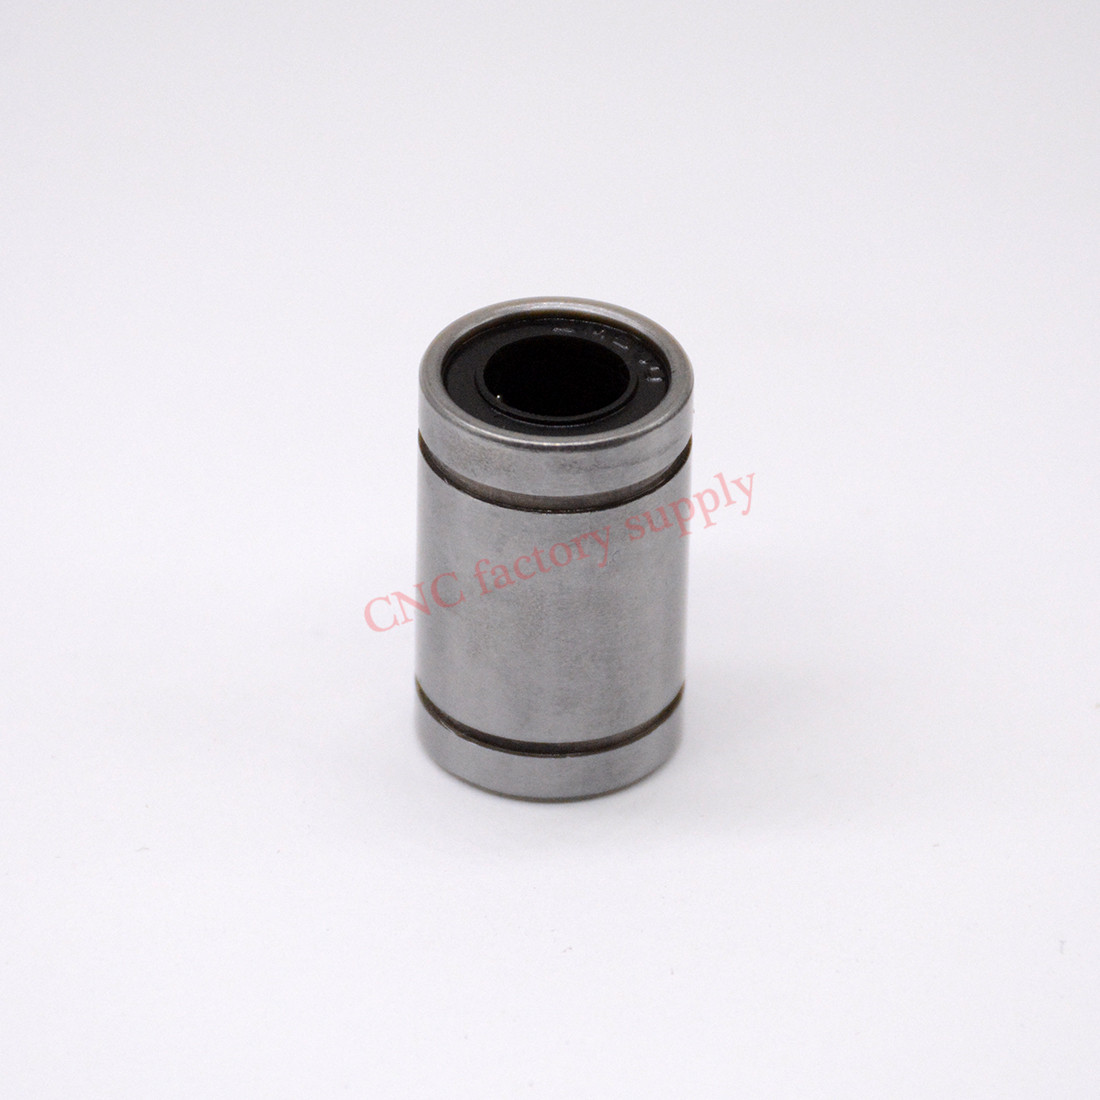 Free shipping LM4UU Linear Bushing 4mm CNC Linear Bearings 4pcs/lot free shipping lm60uu 60mm linear bushing cnc linear bearings